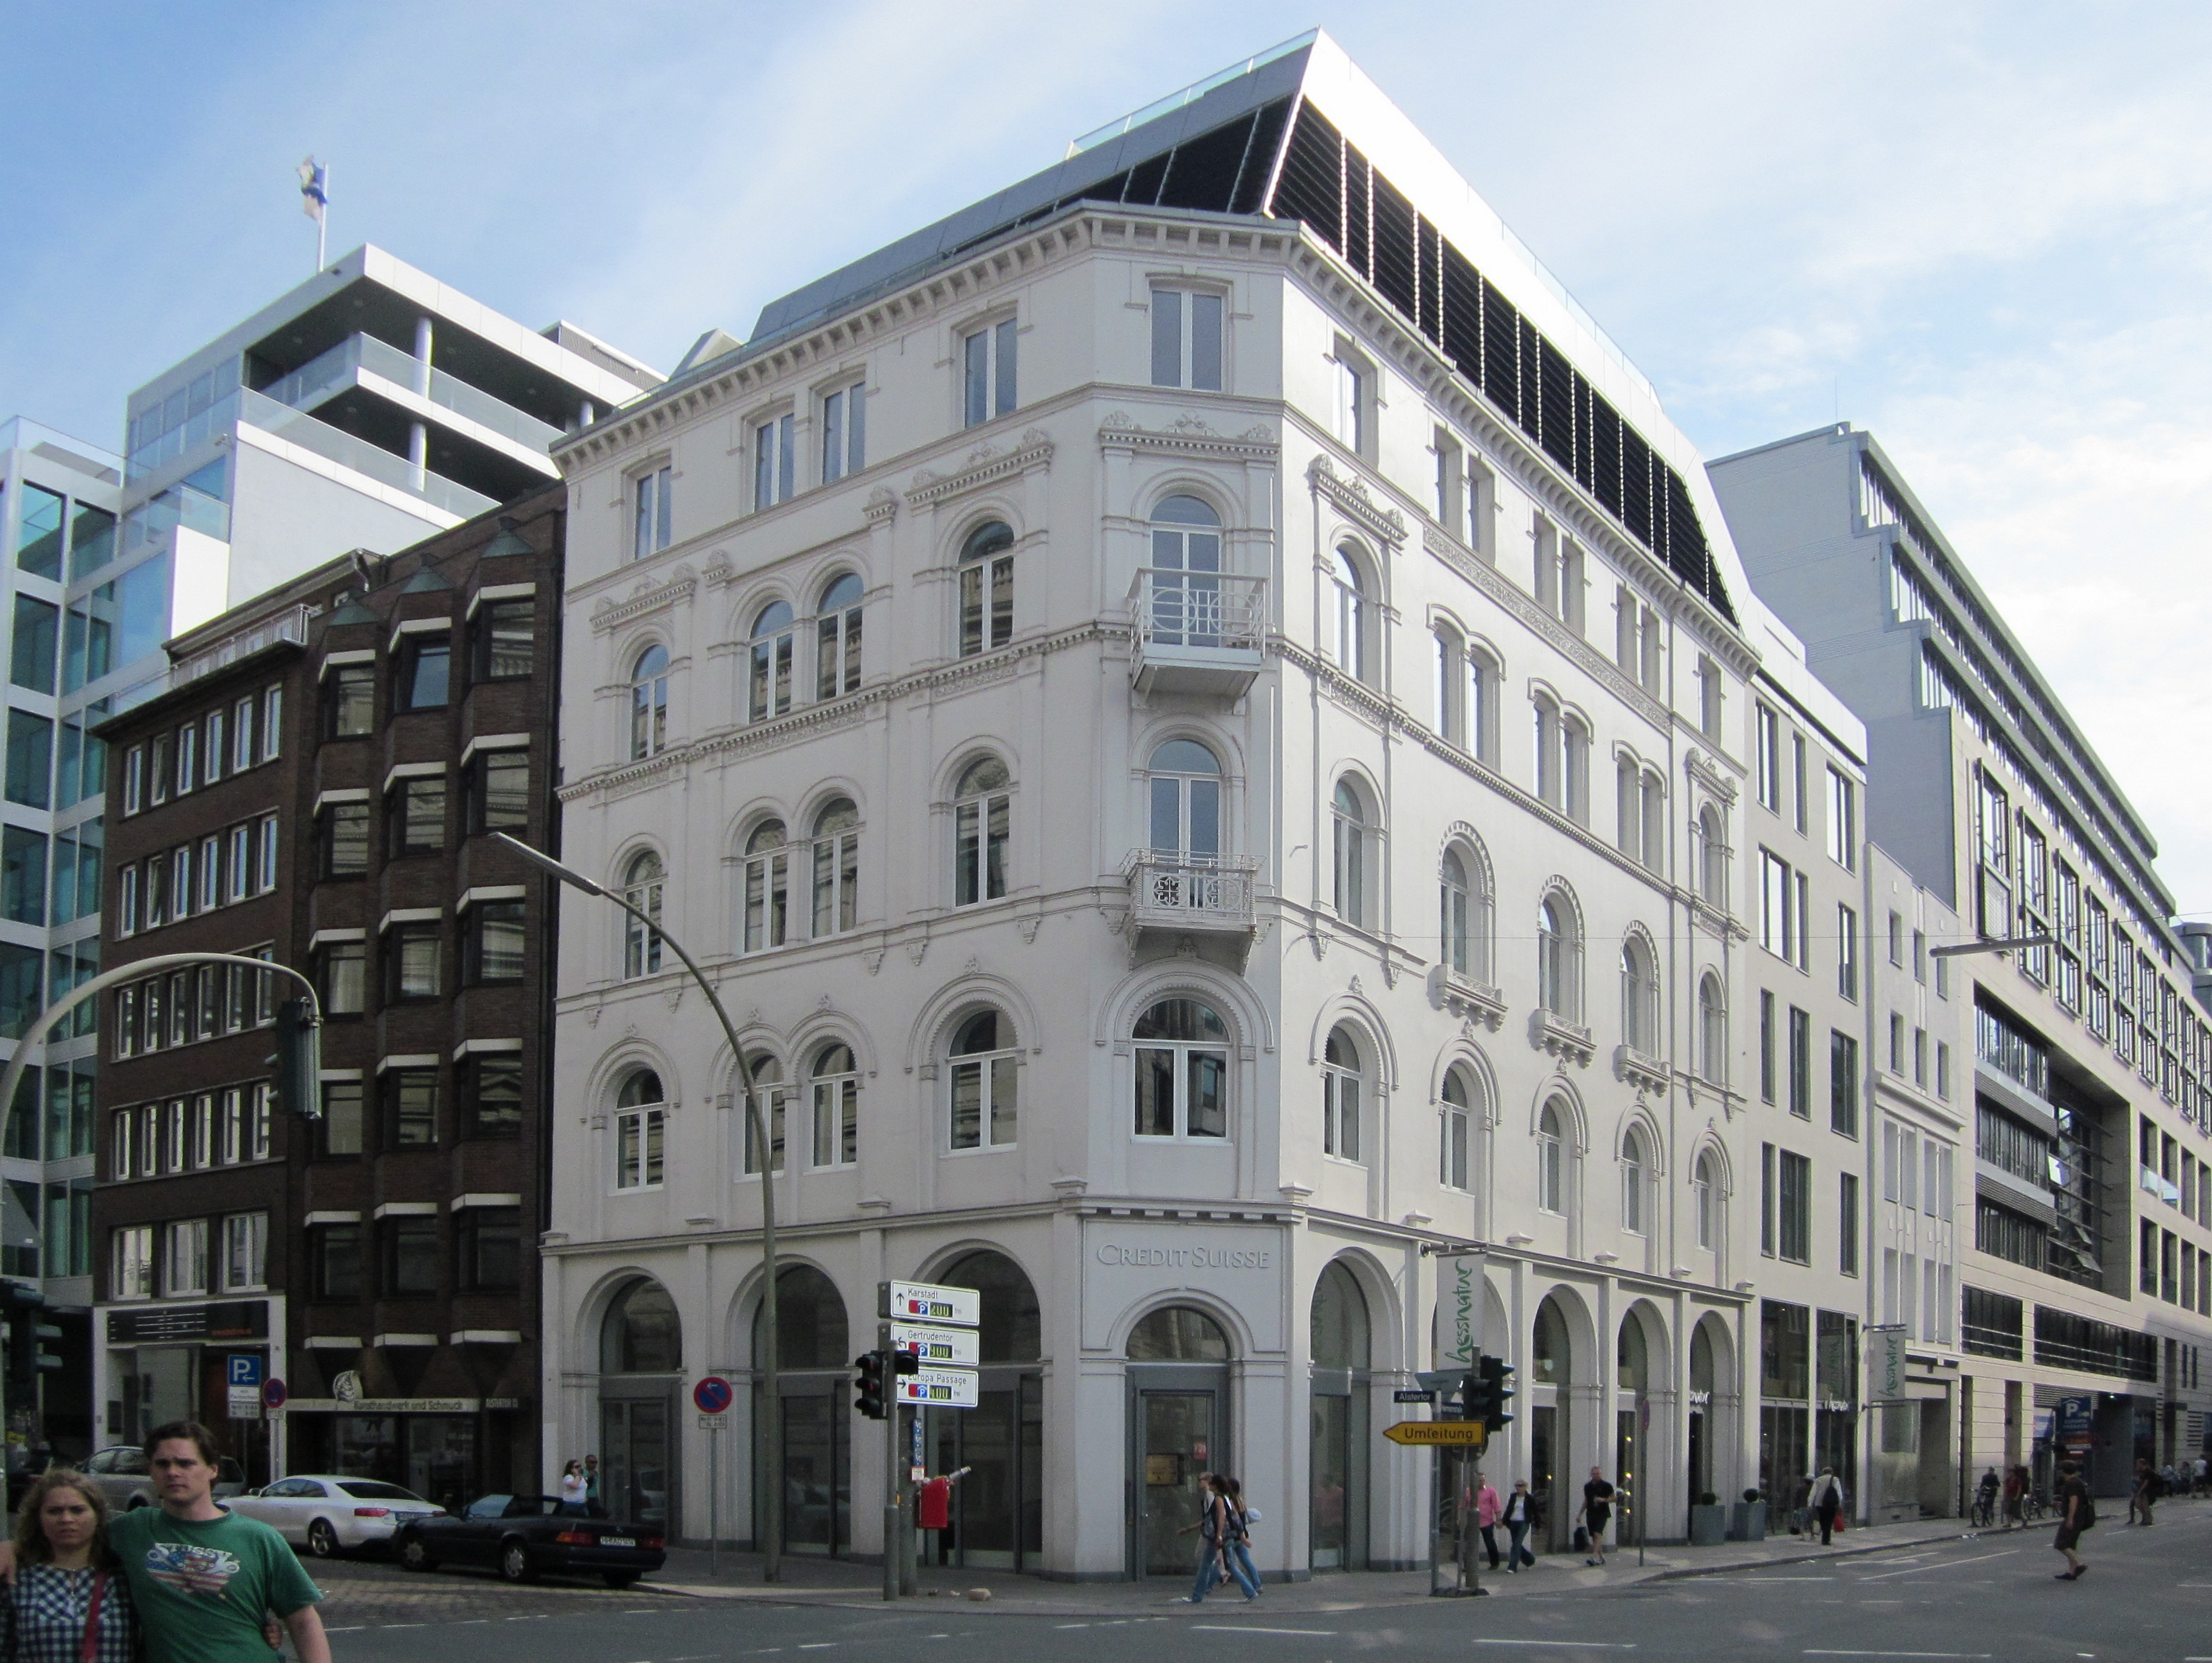 Alstertor 17 was one of several commissions completed by Ungewitter as part of the rebuilding of central Hamburg following [[:de:Hamburger Brand the Great Fire of 1842]].